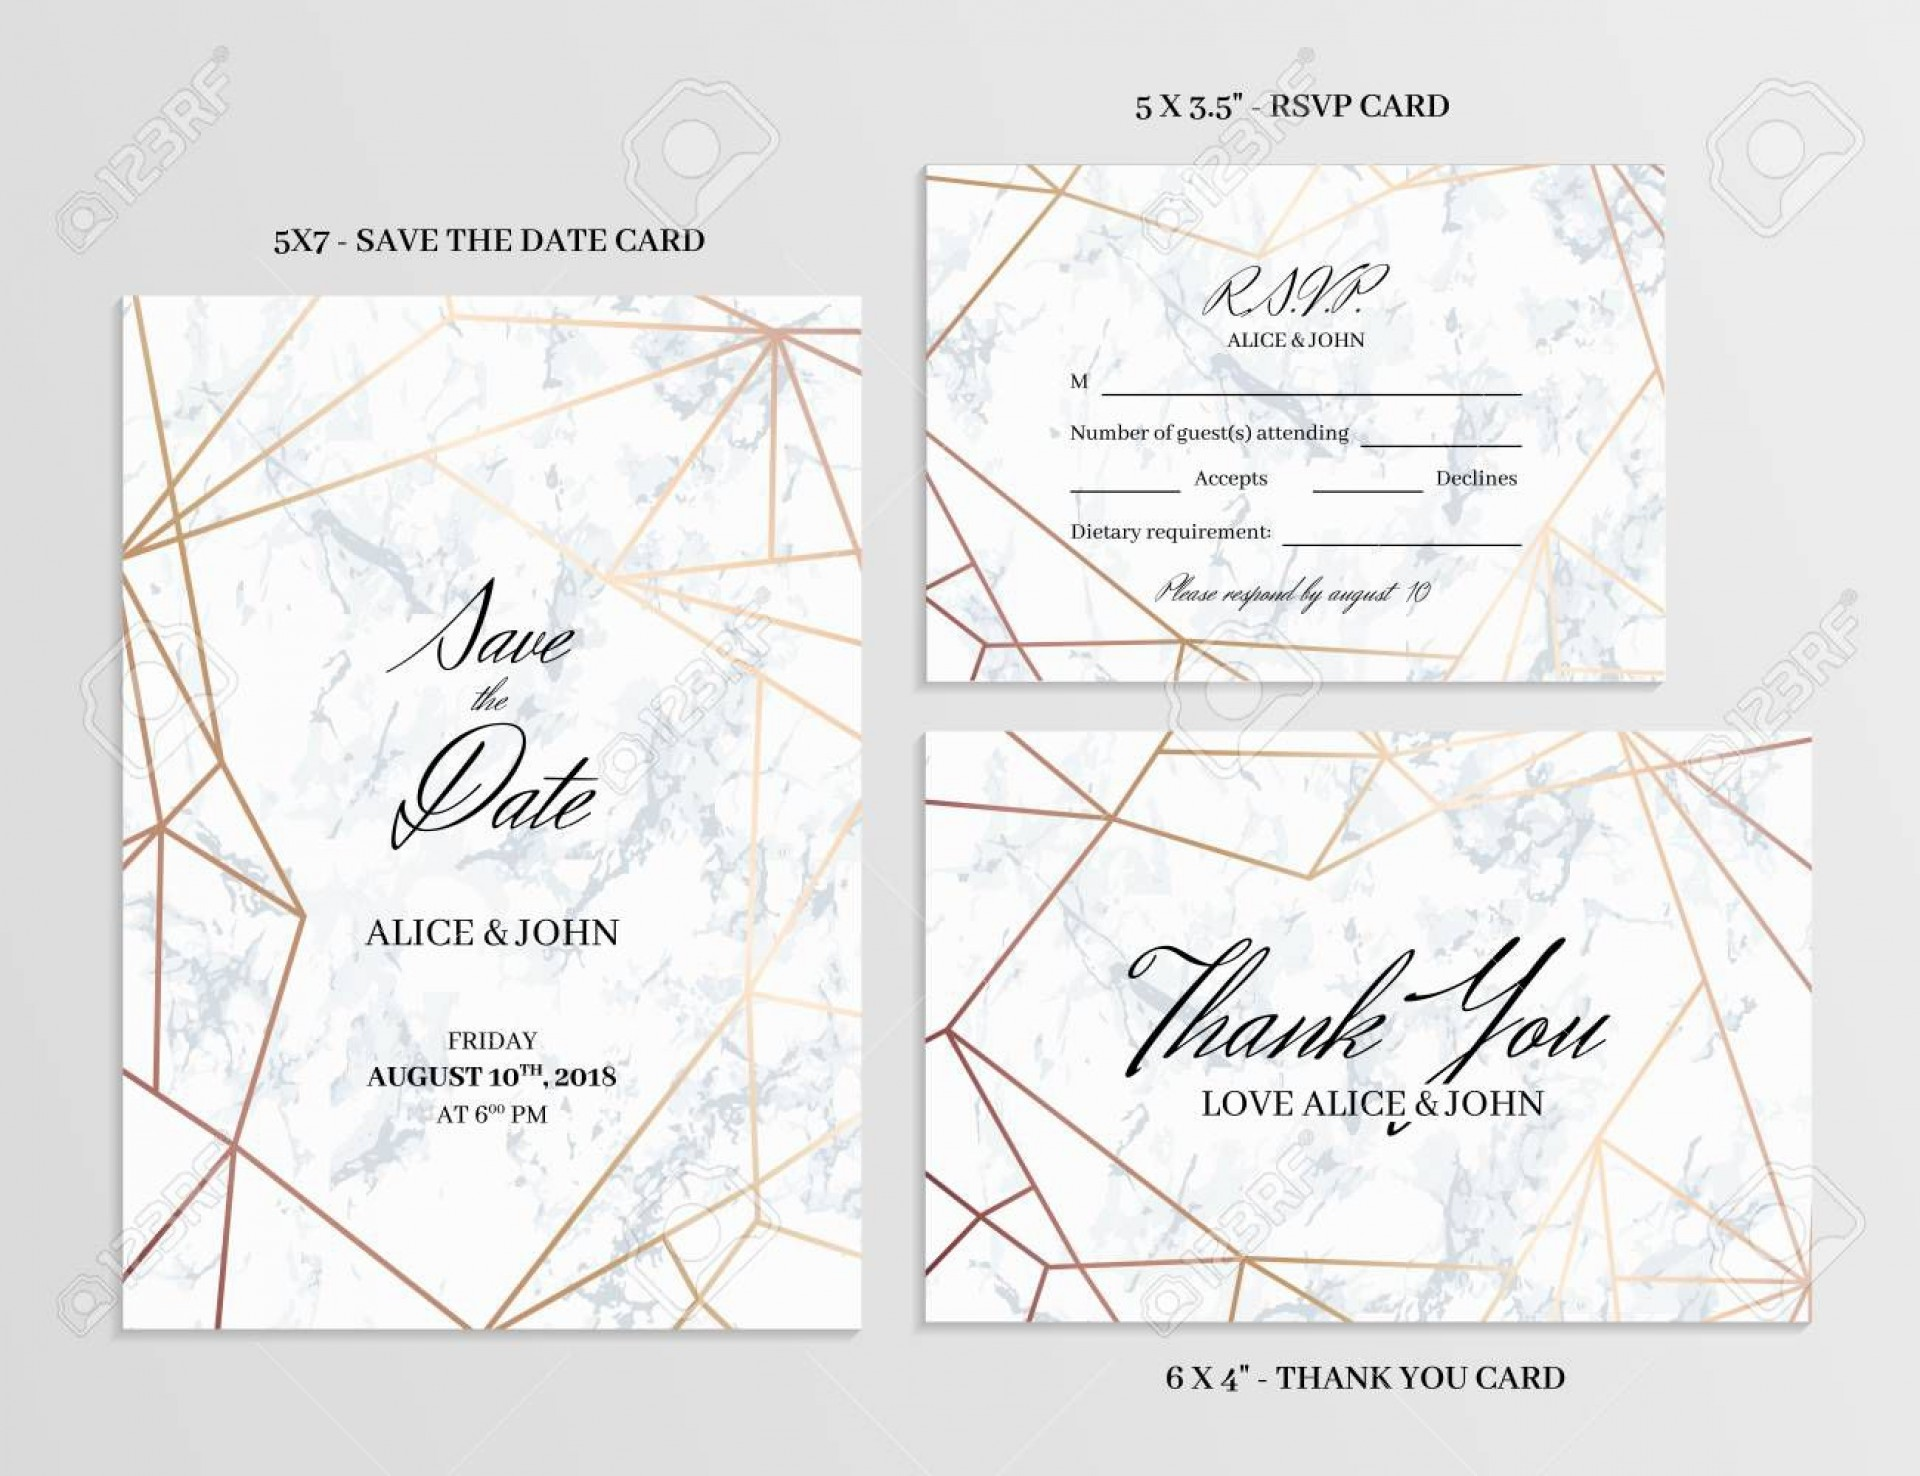 000 Marvelou Wedding Rsvp Card Template Concept  Templates Invitation Menu Free Printable1920